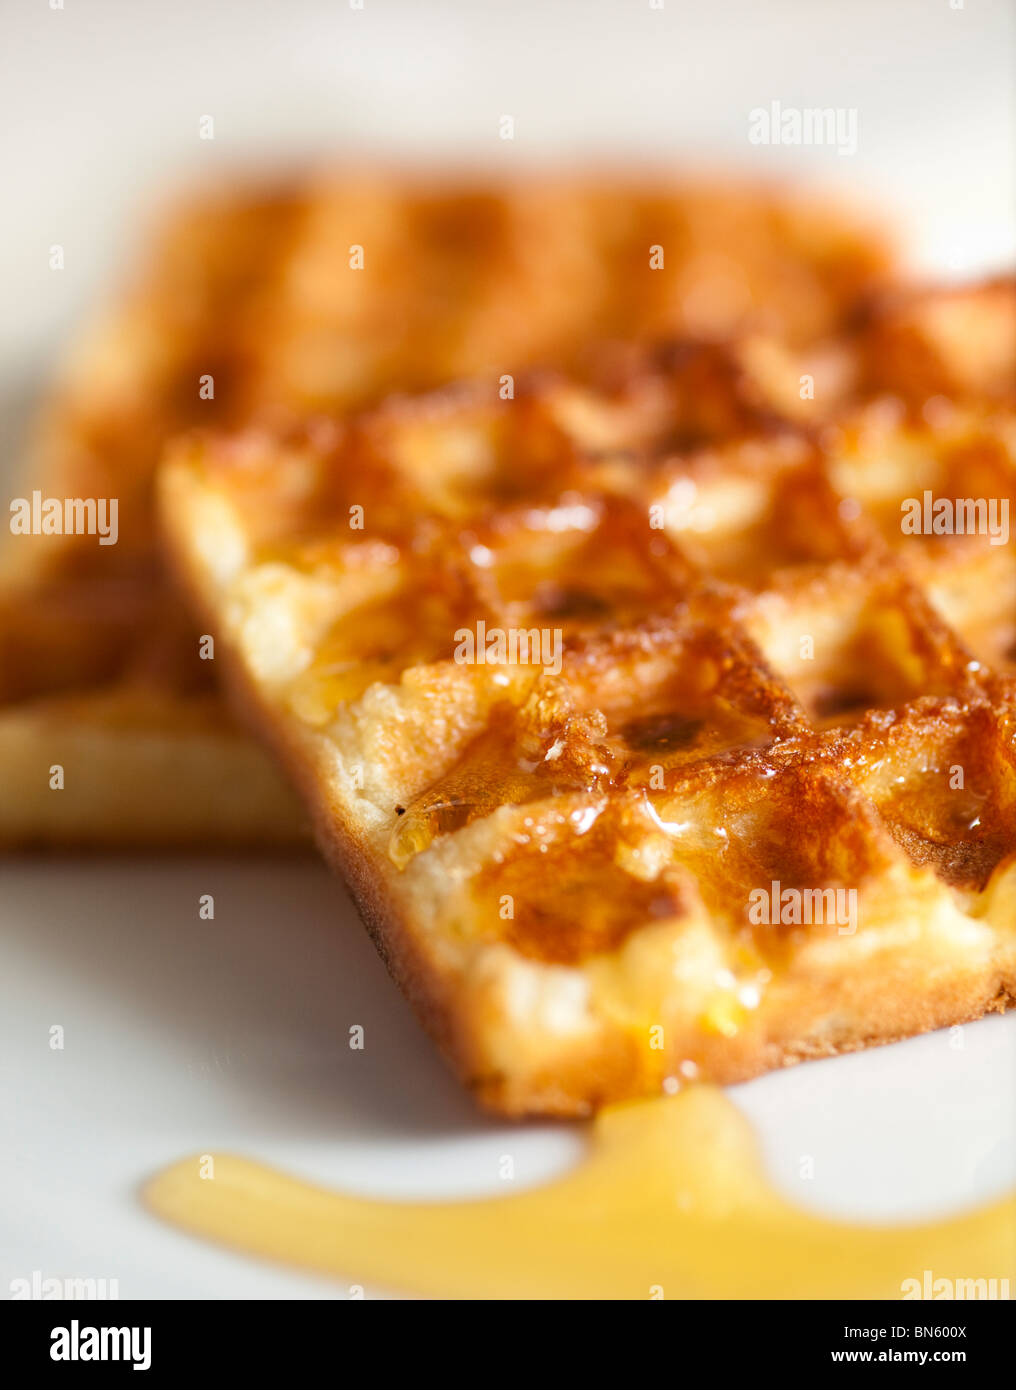 Toasted Waffles with Golden syrup - Stock Image